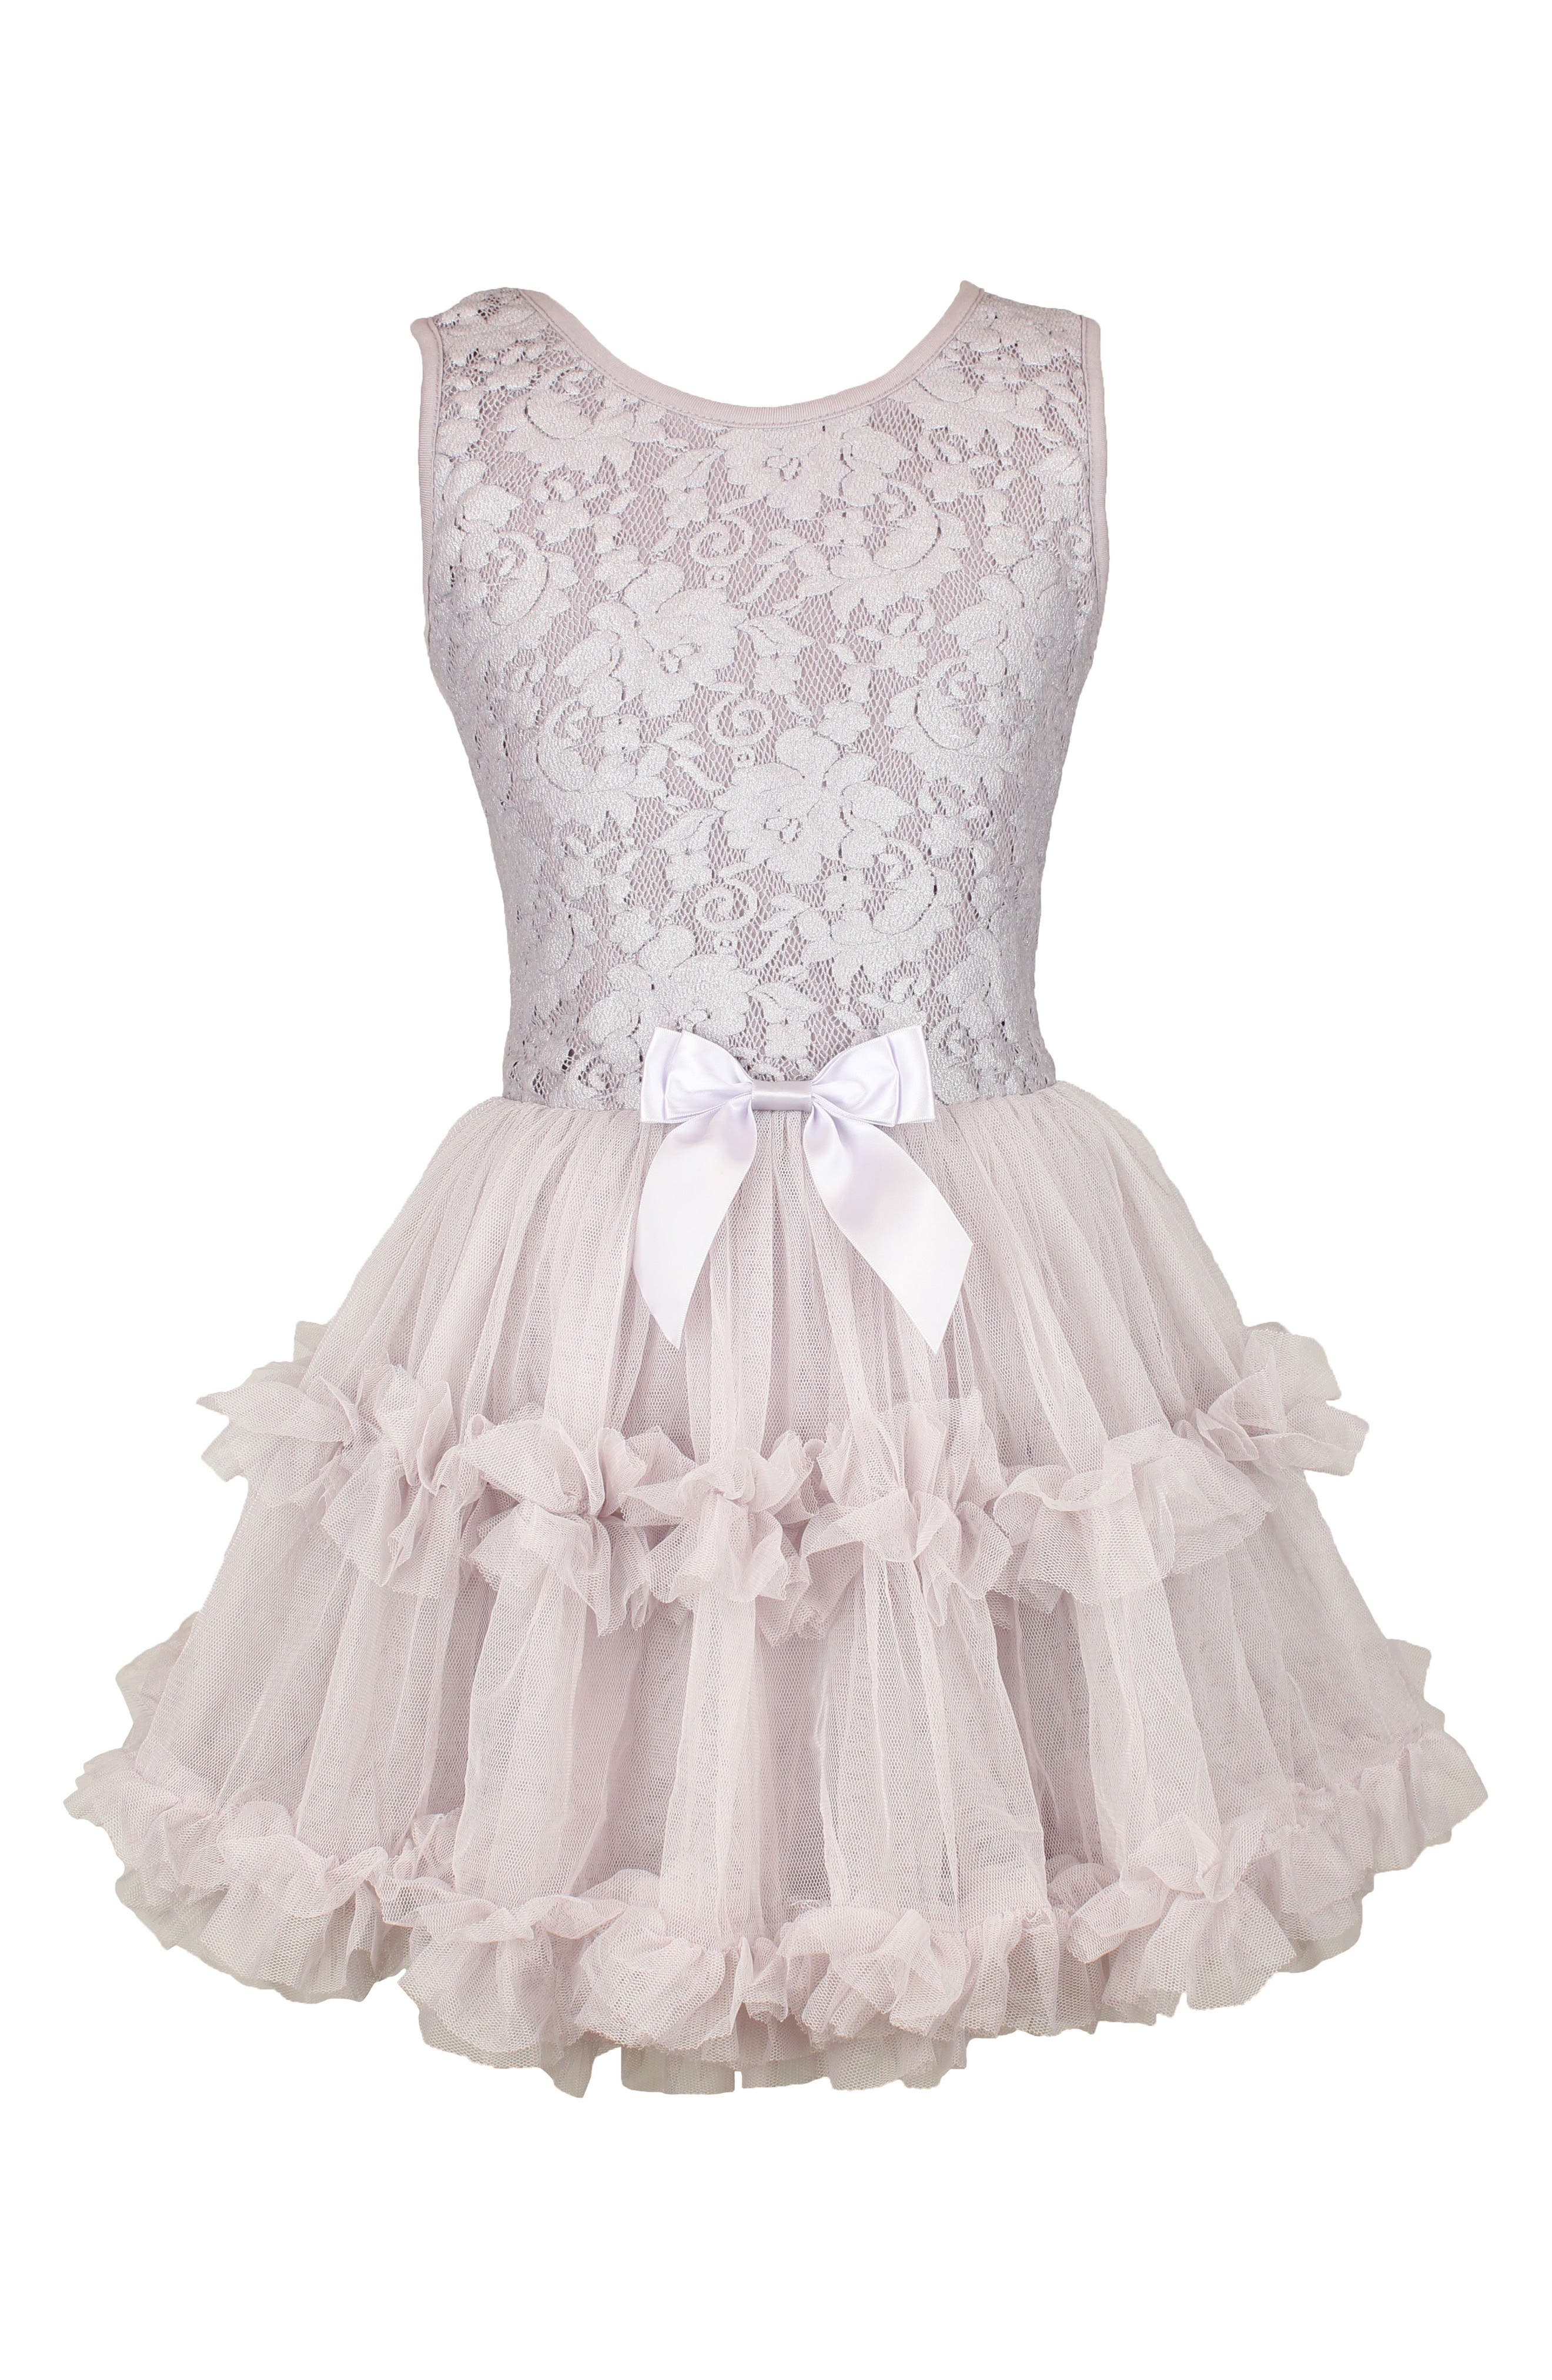 POPATU Lace & Tulle Sleeveless Dress